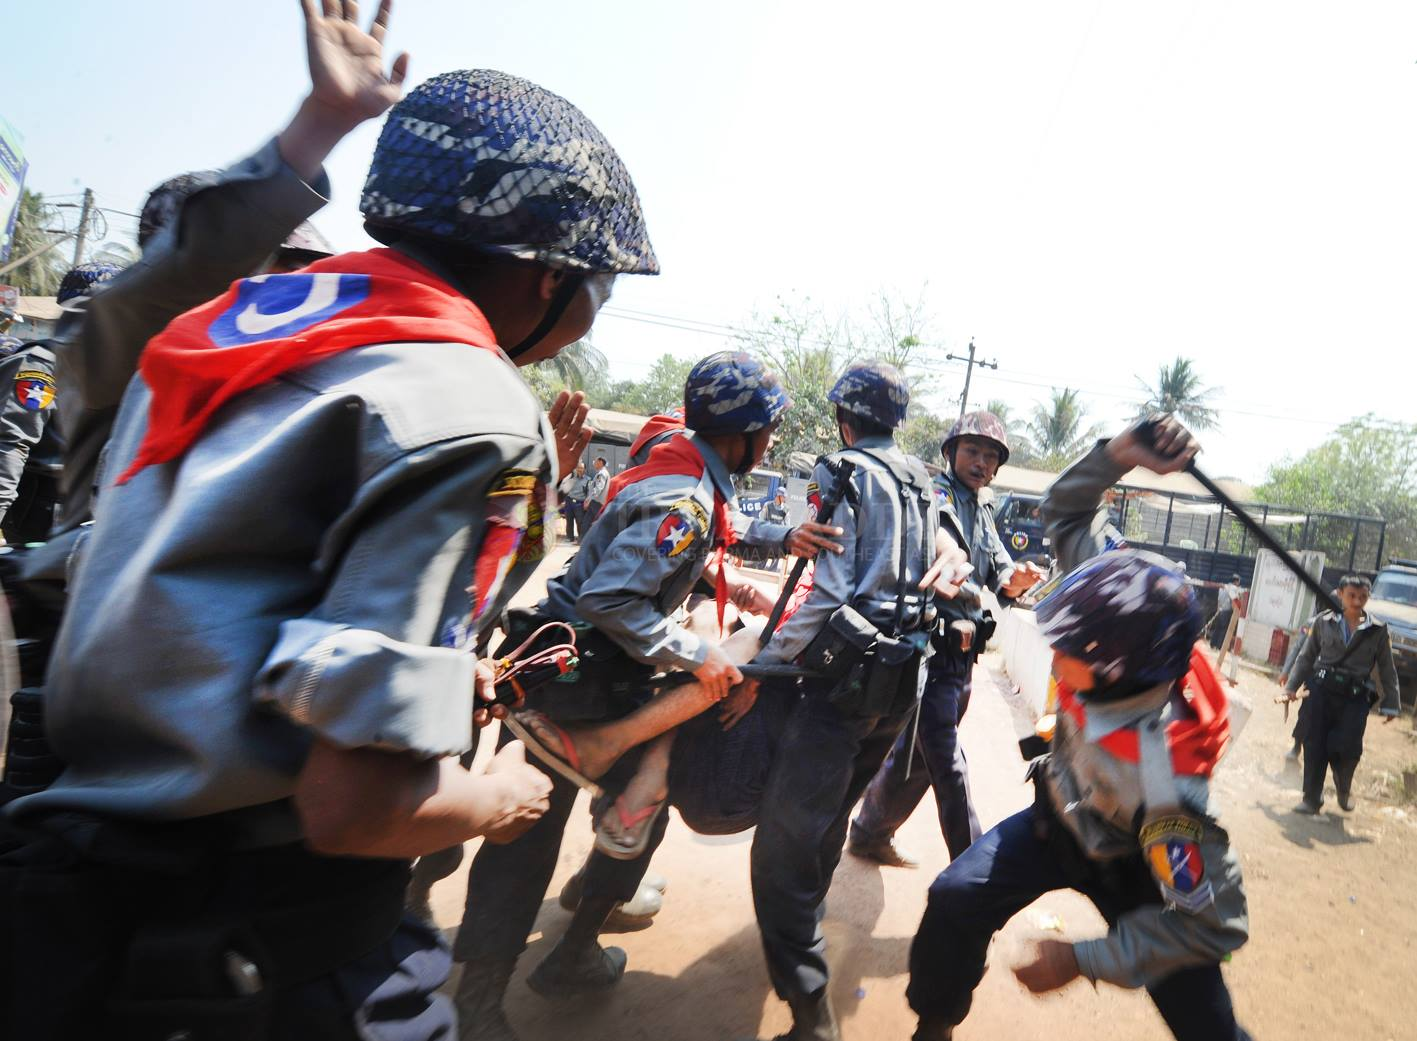 Injured student during Letpadan crackdown